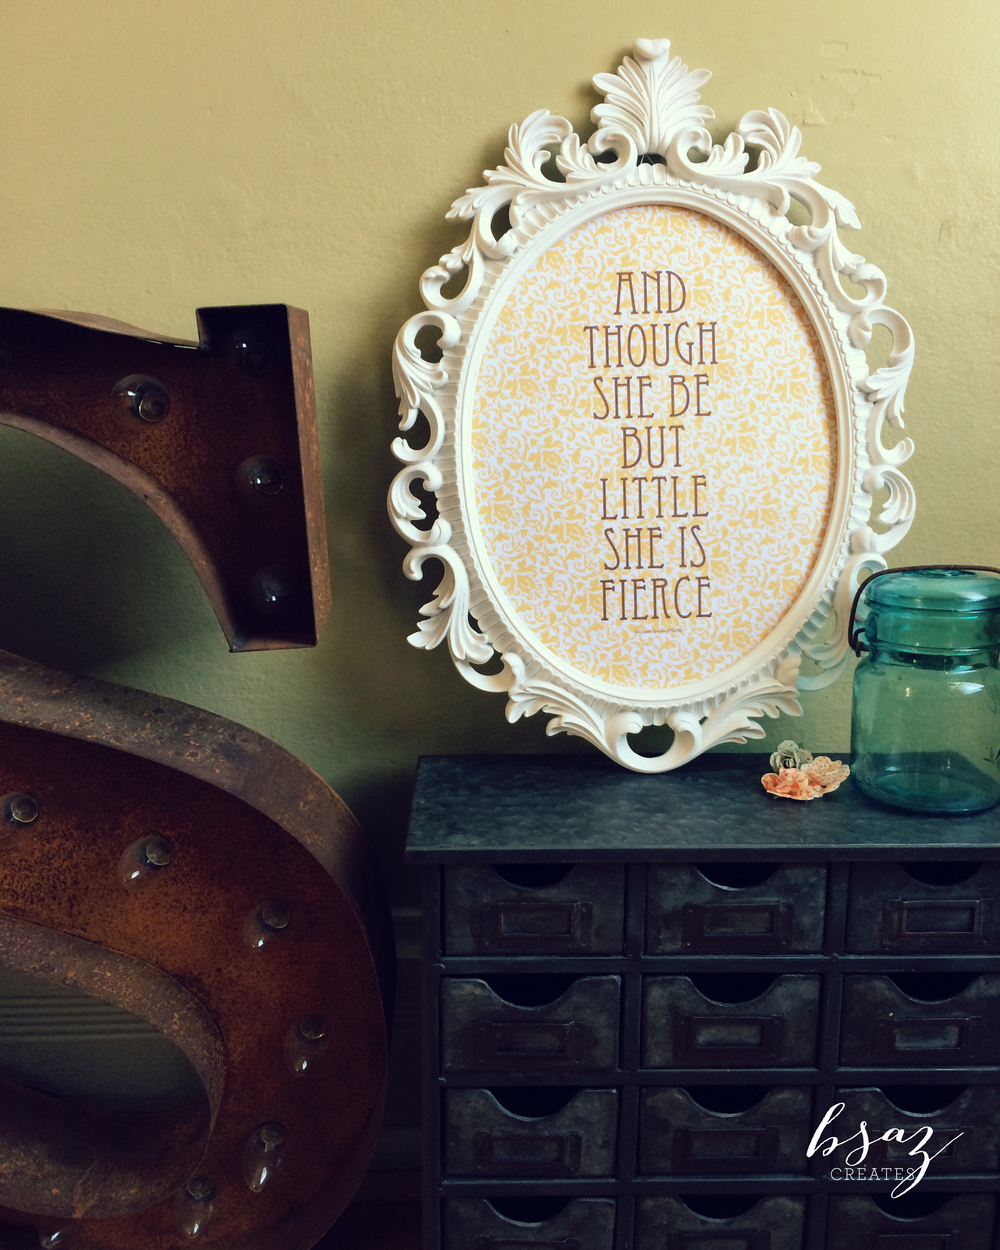 BSaz Creates Nursery Quote Wall Art